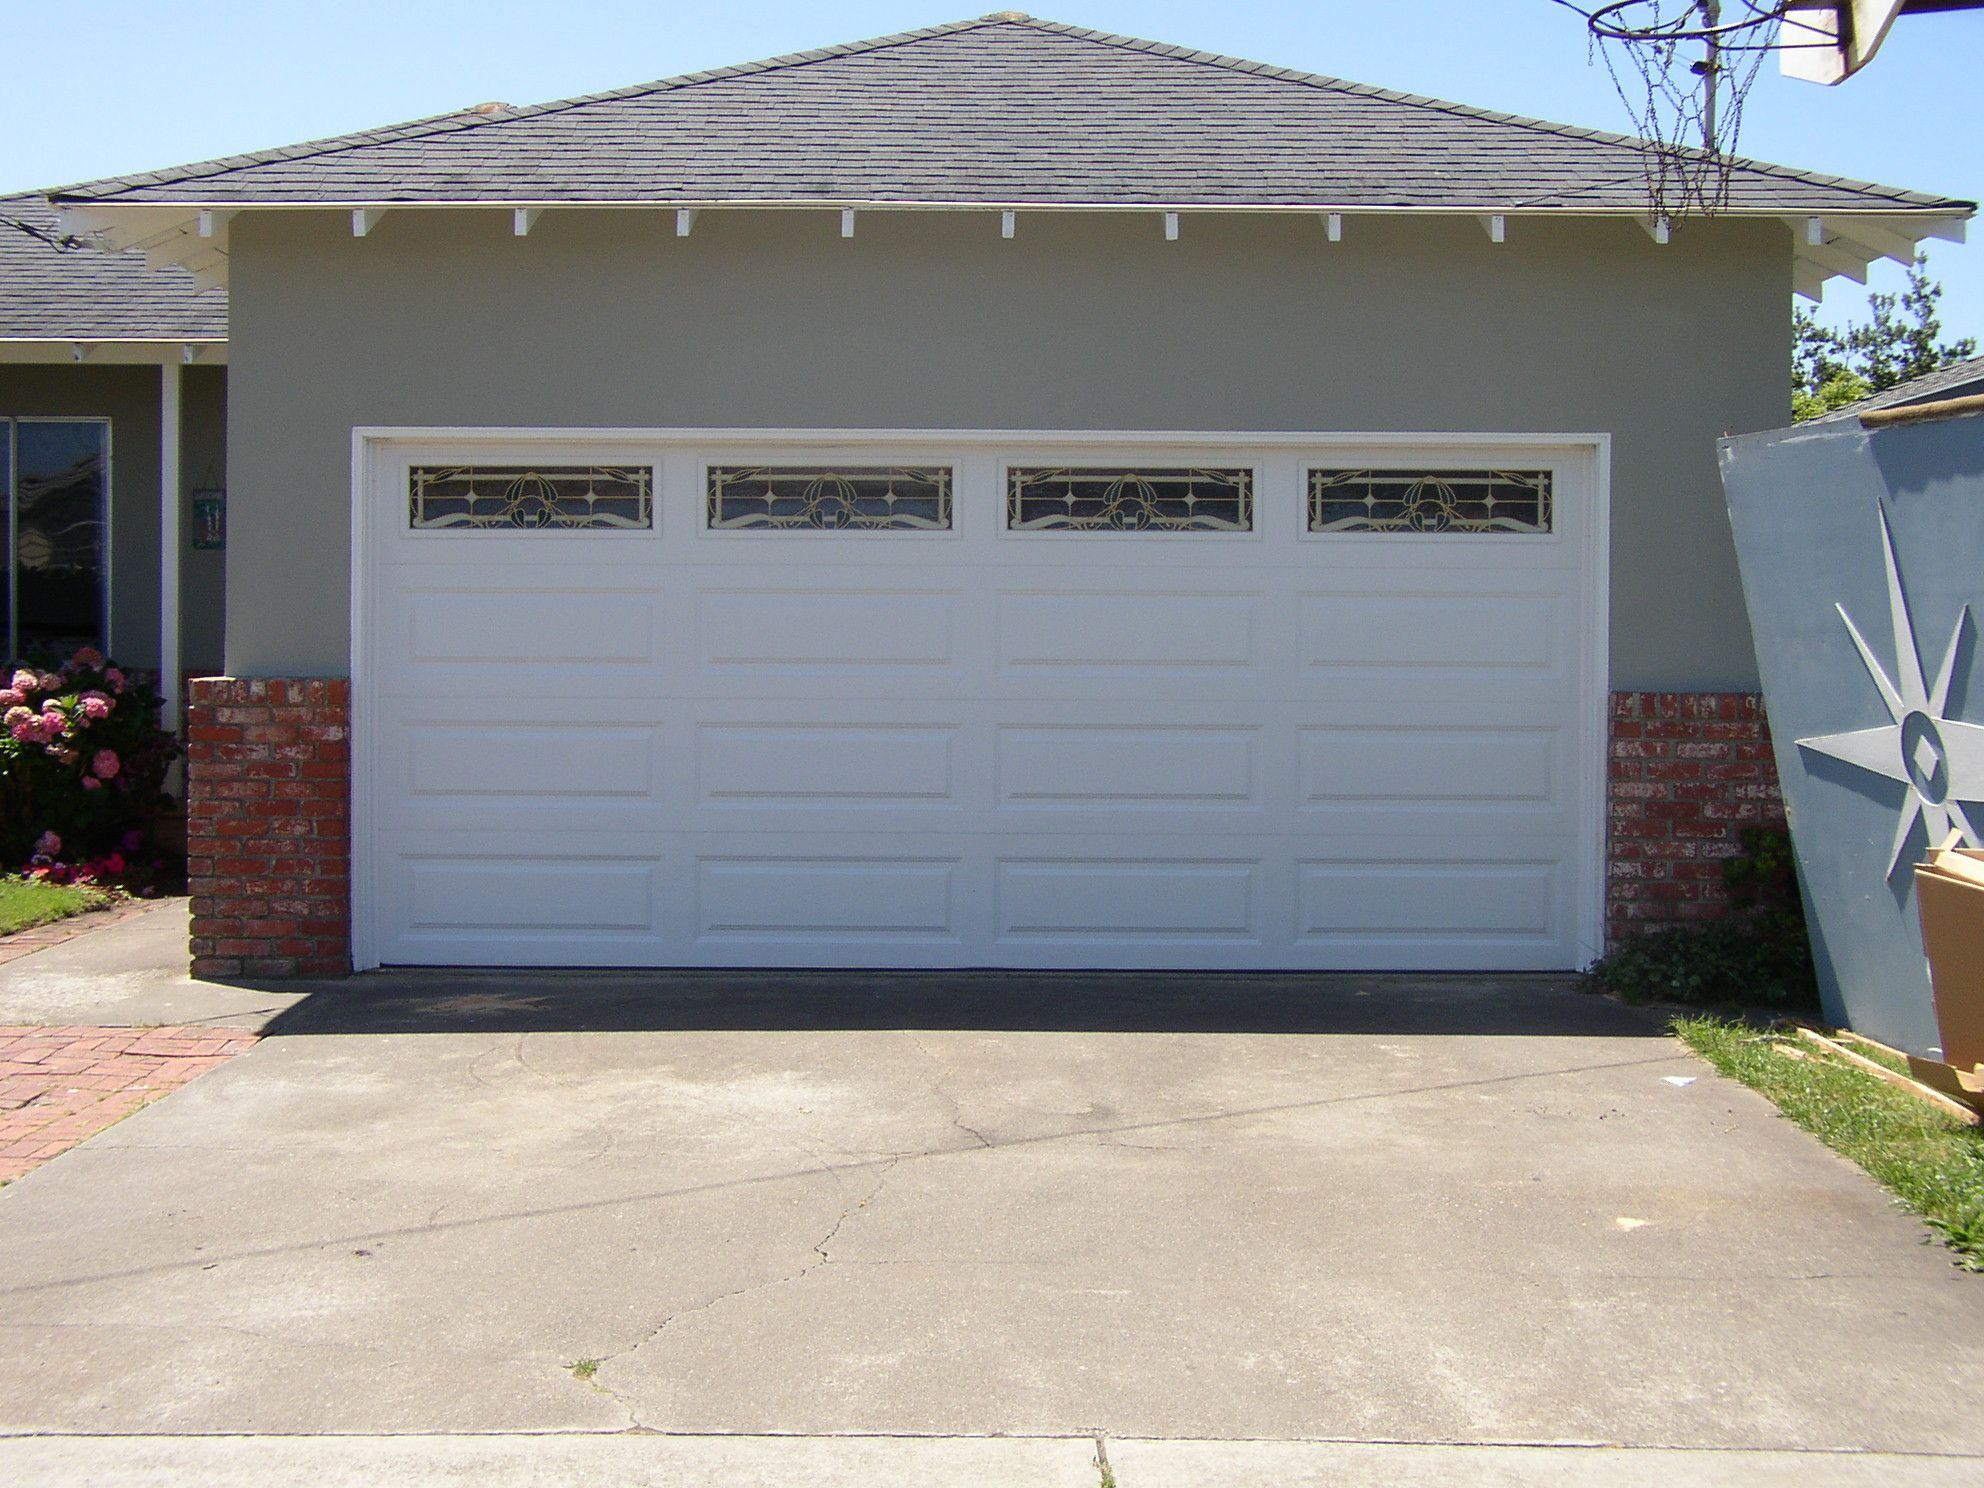 Normal height of garage doors - Local Garage Door Repair Installation Business Providing Garage Door Repair Openers Torsion